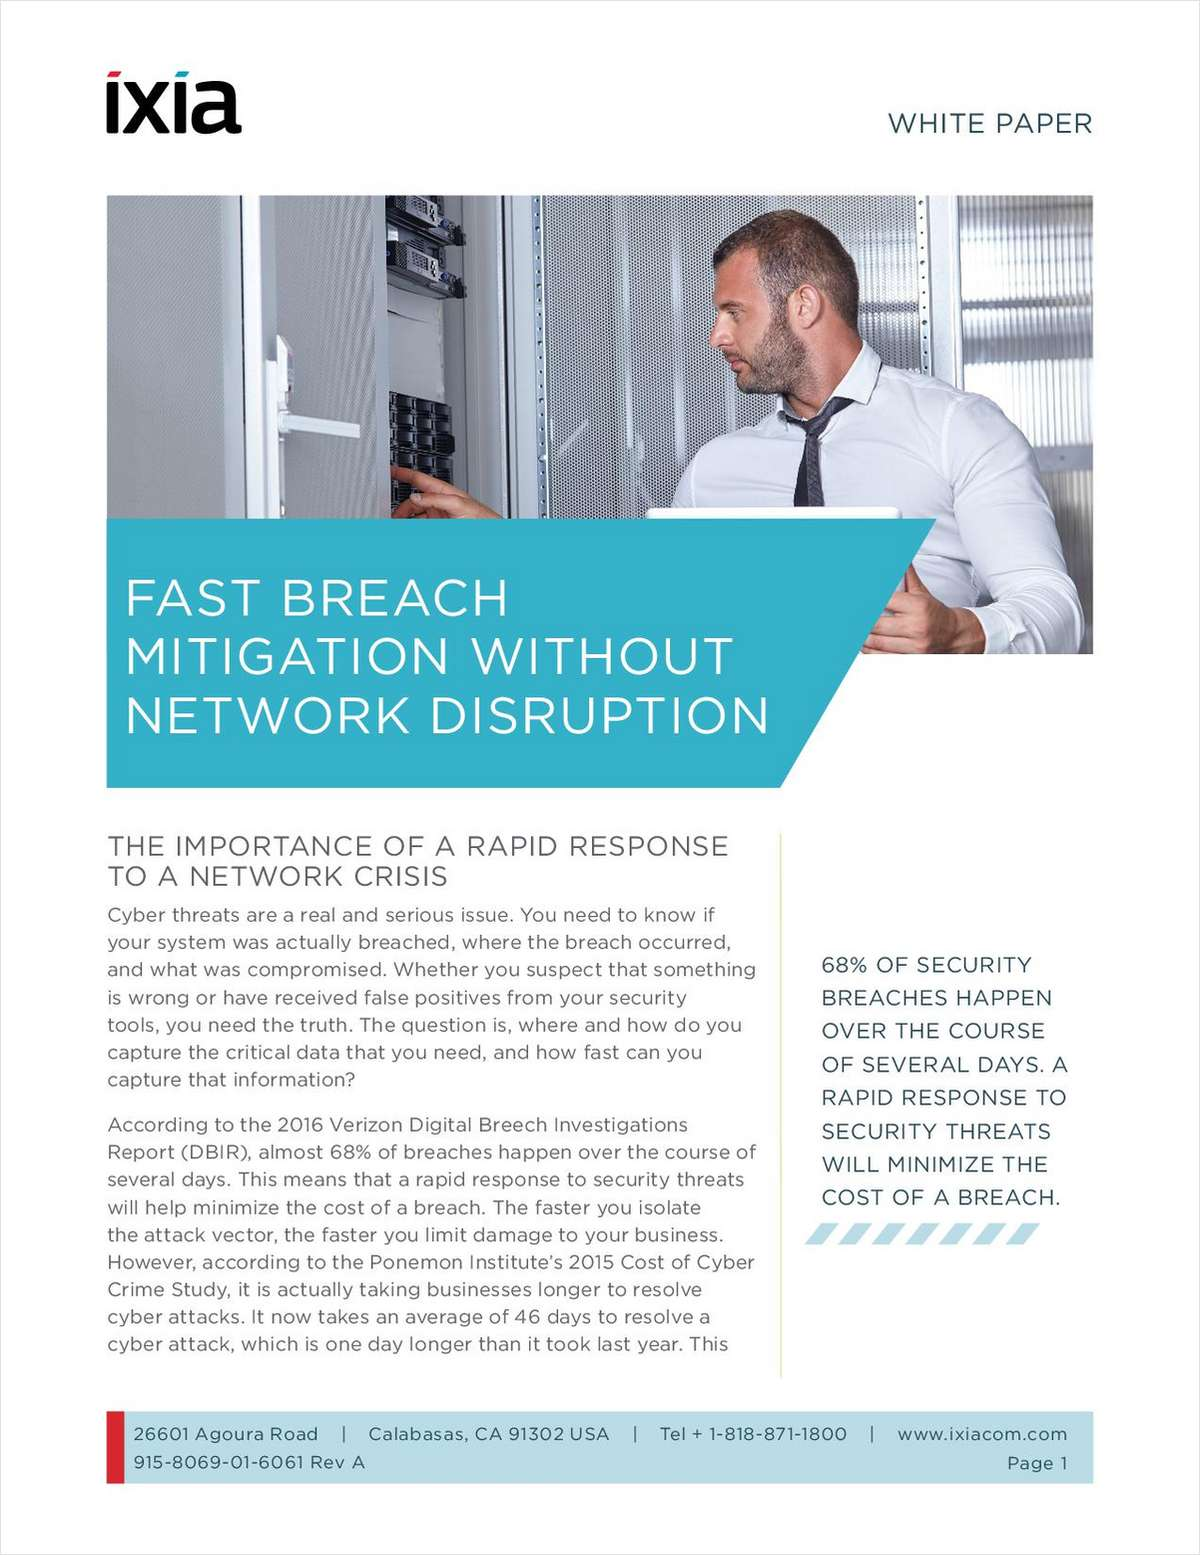 Fast Breach Mitigation Without Network Disruption